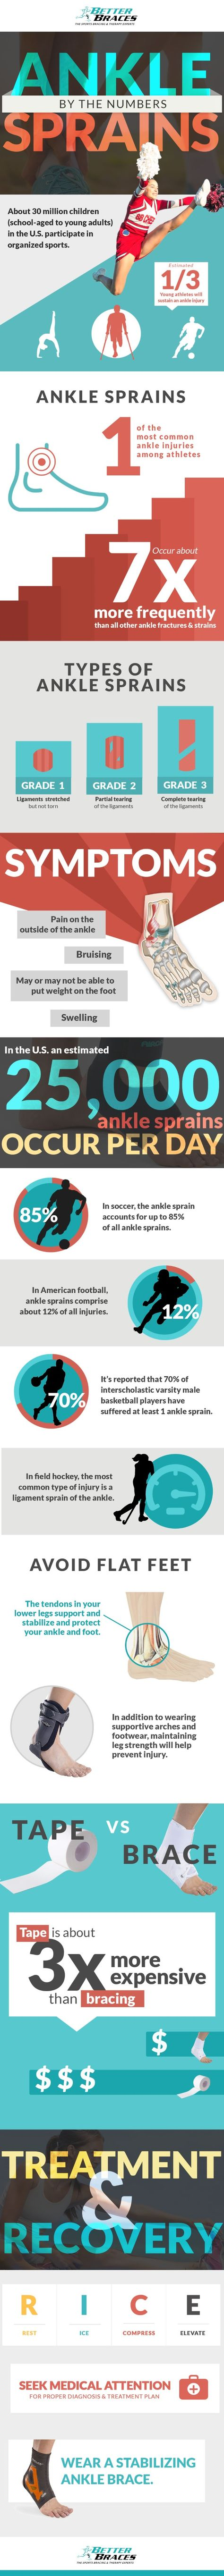 Ankle Sprains by the Numbers [Infographic] Everything Ankle Sprains